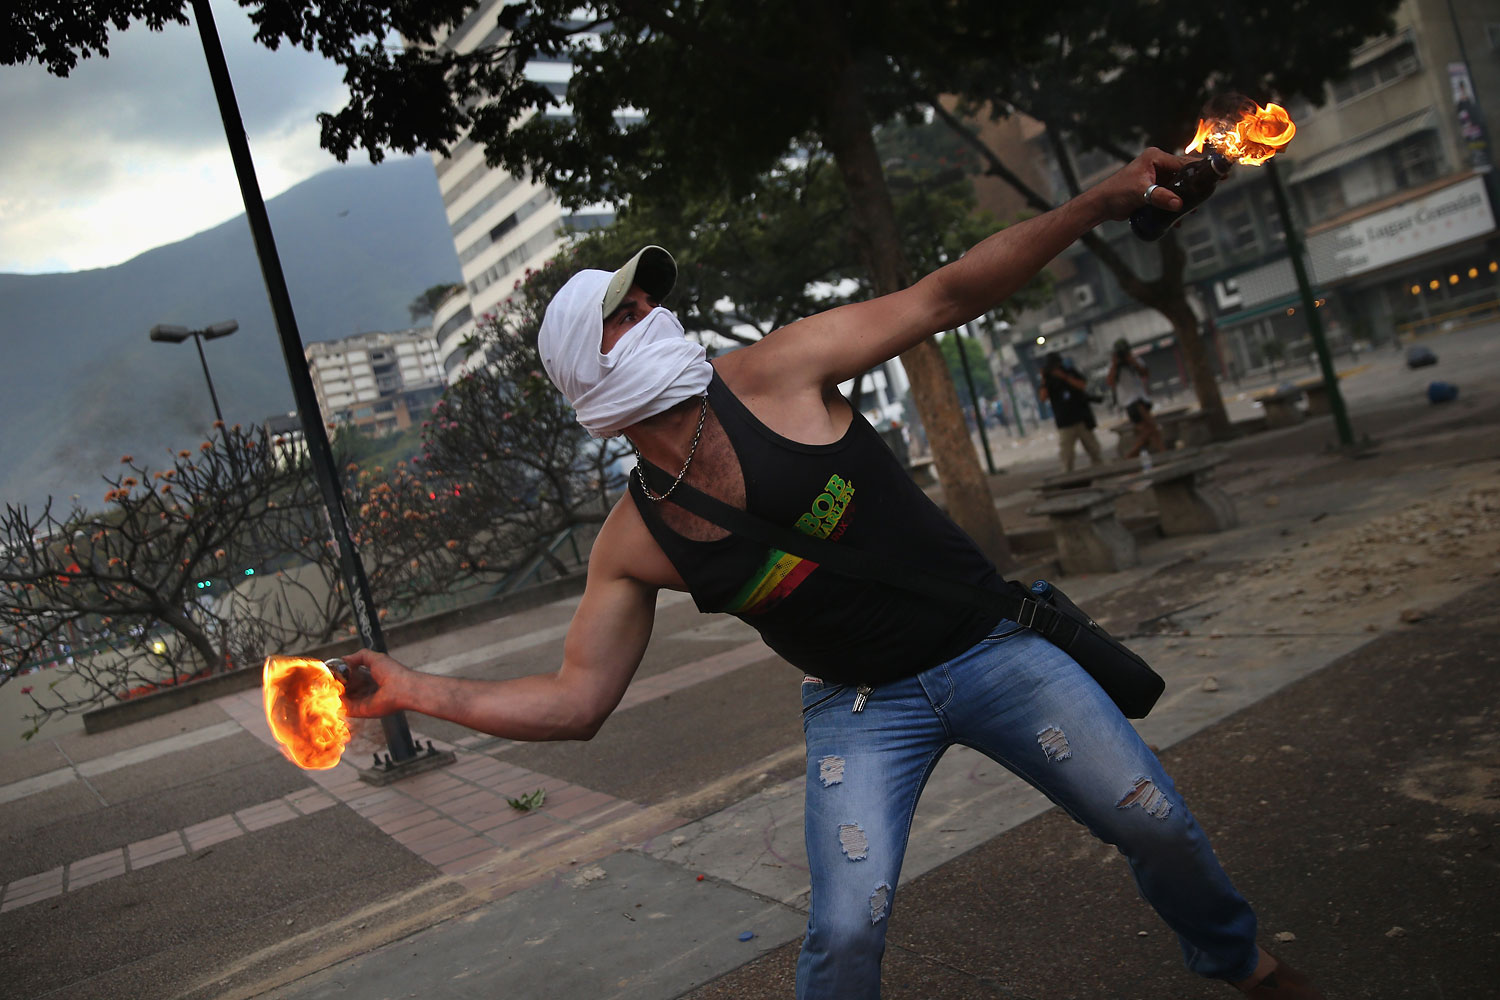 A protester throws a molotov cocktail at Venezuelan security forces during an anti-government demonstration on March 6, 2014 in Caracas.